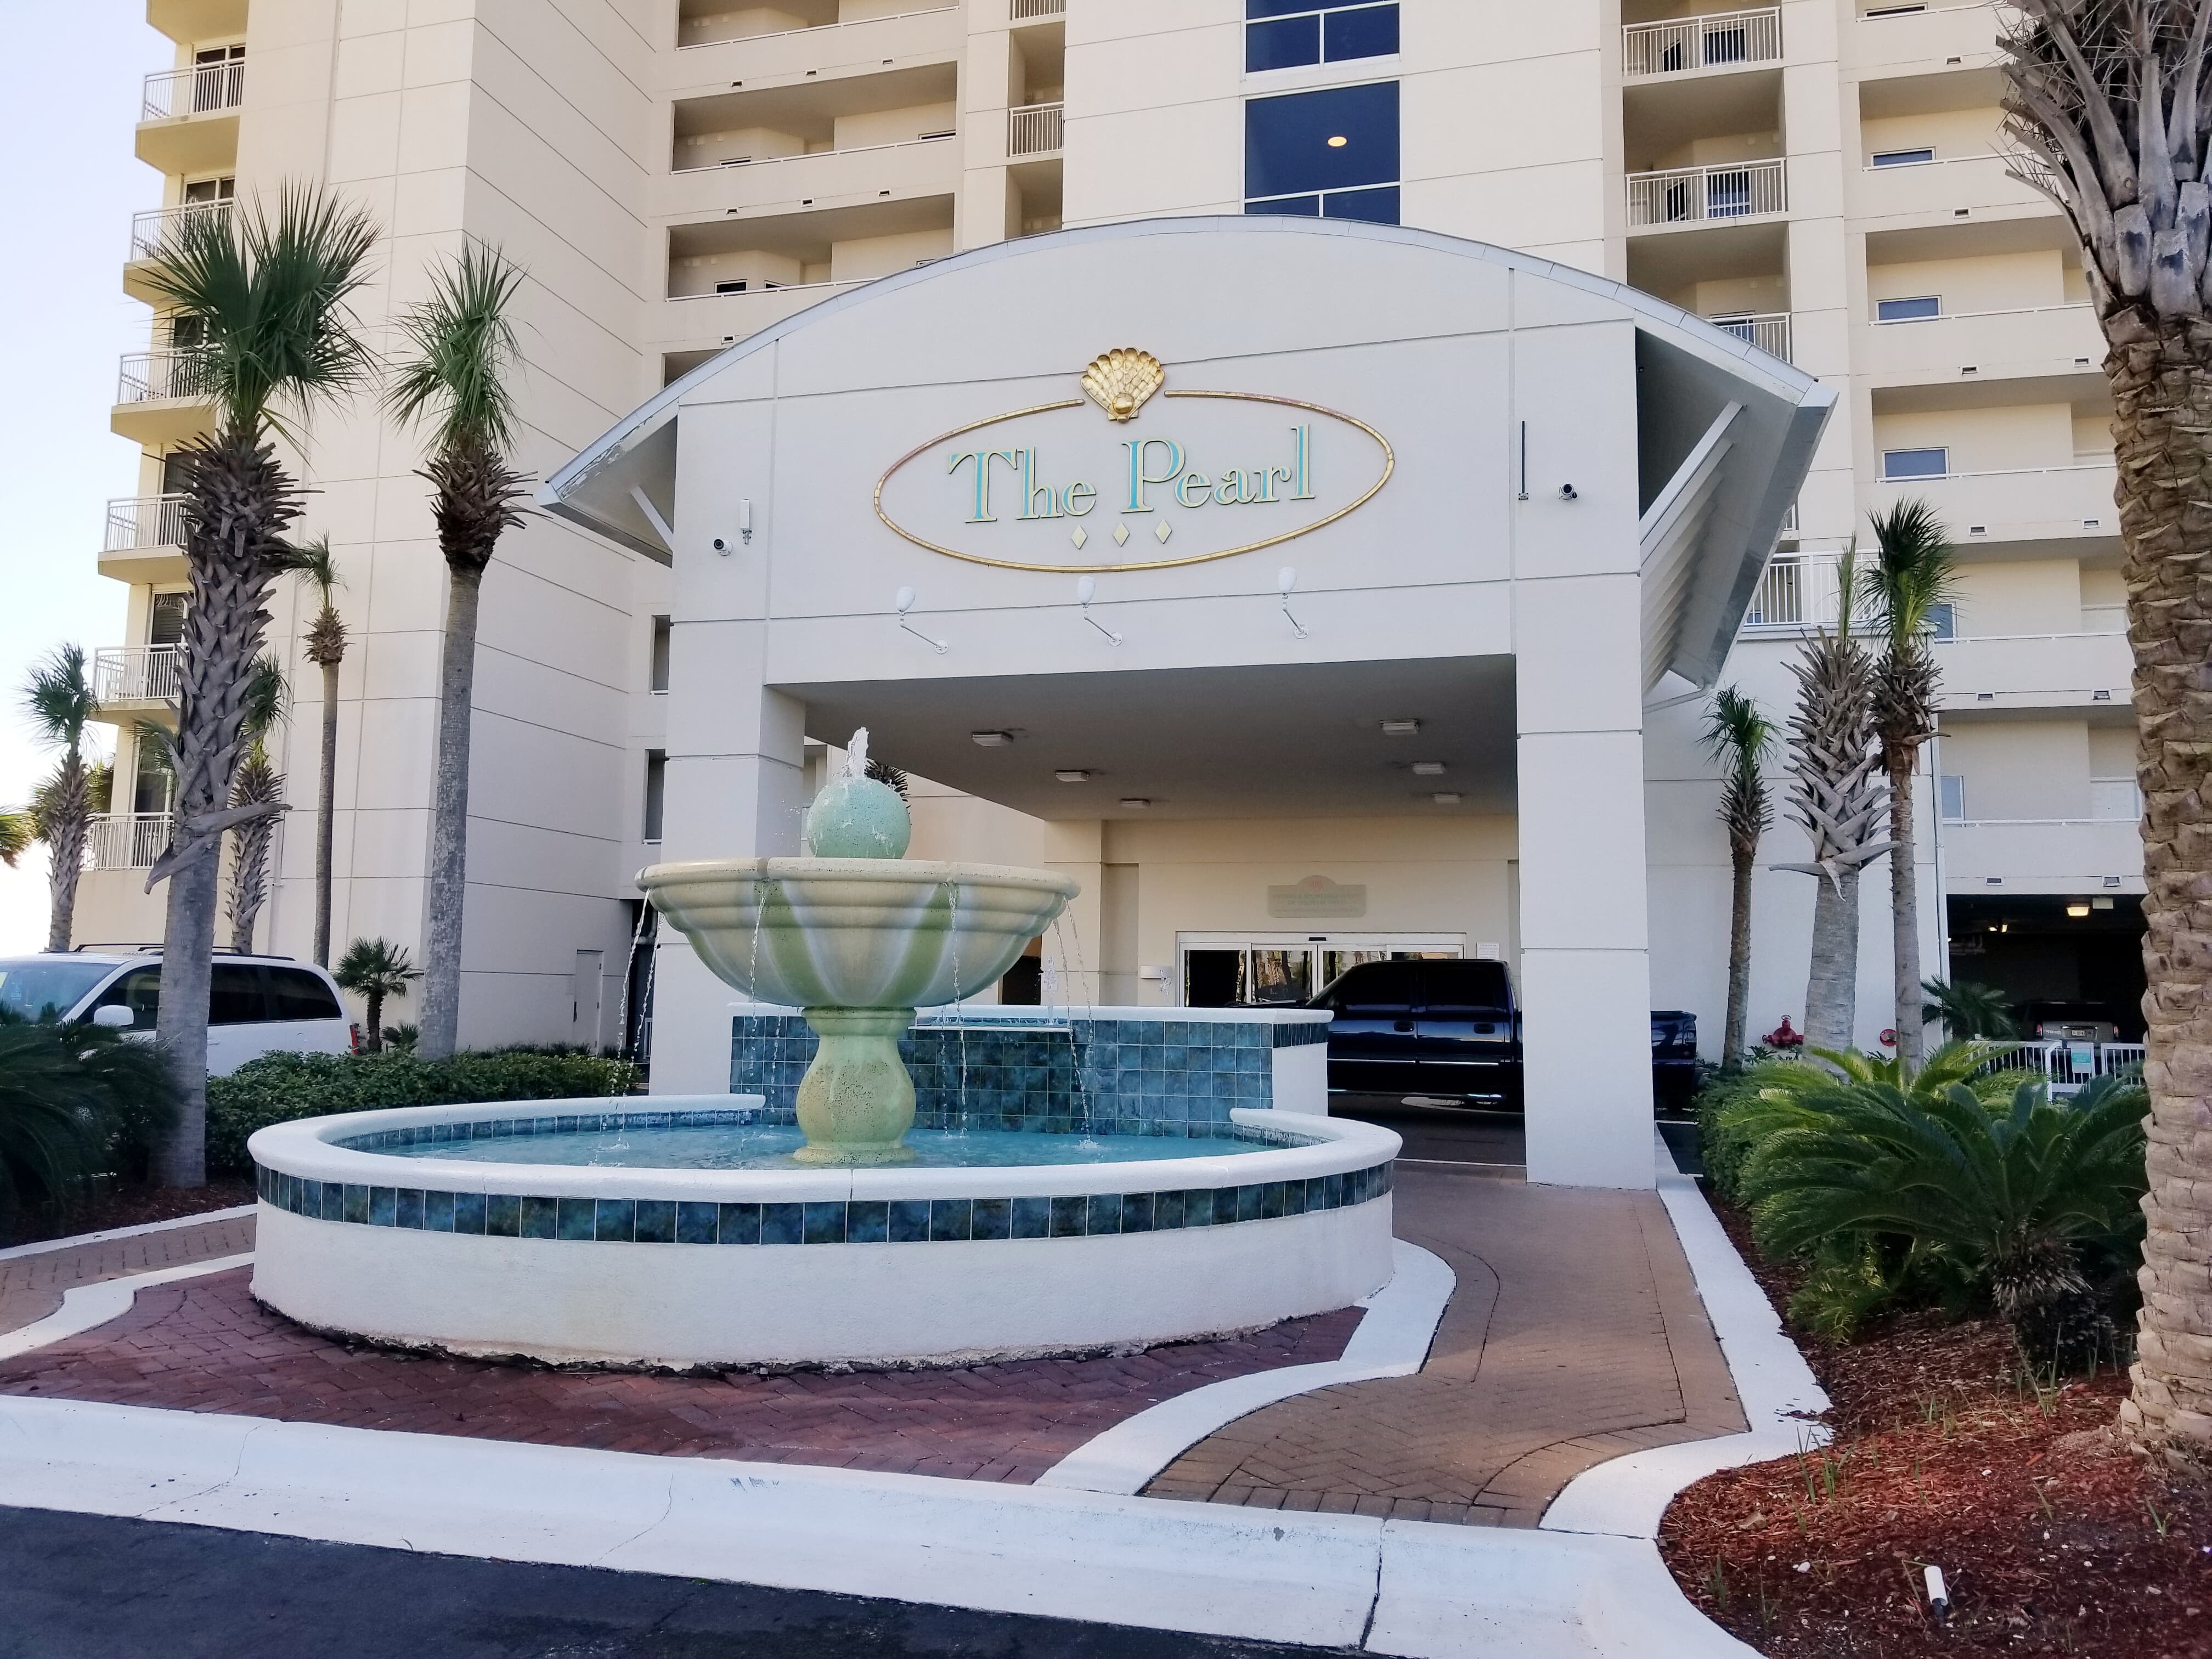 The Pearl of Navarre #504 Condo rental in The Pearl of Navarre Beach in Navarre Florida - #23